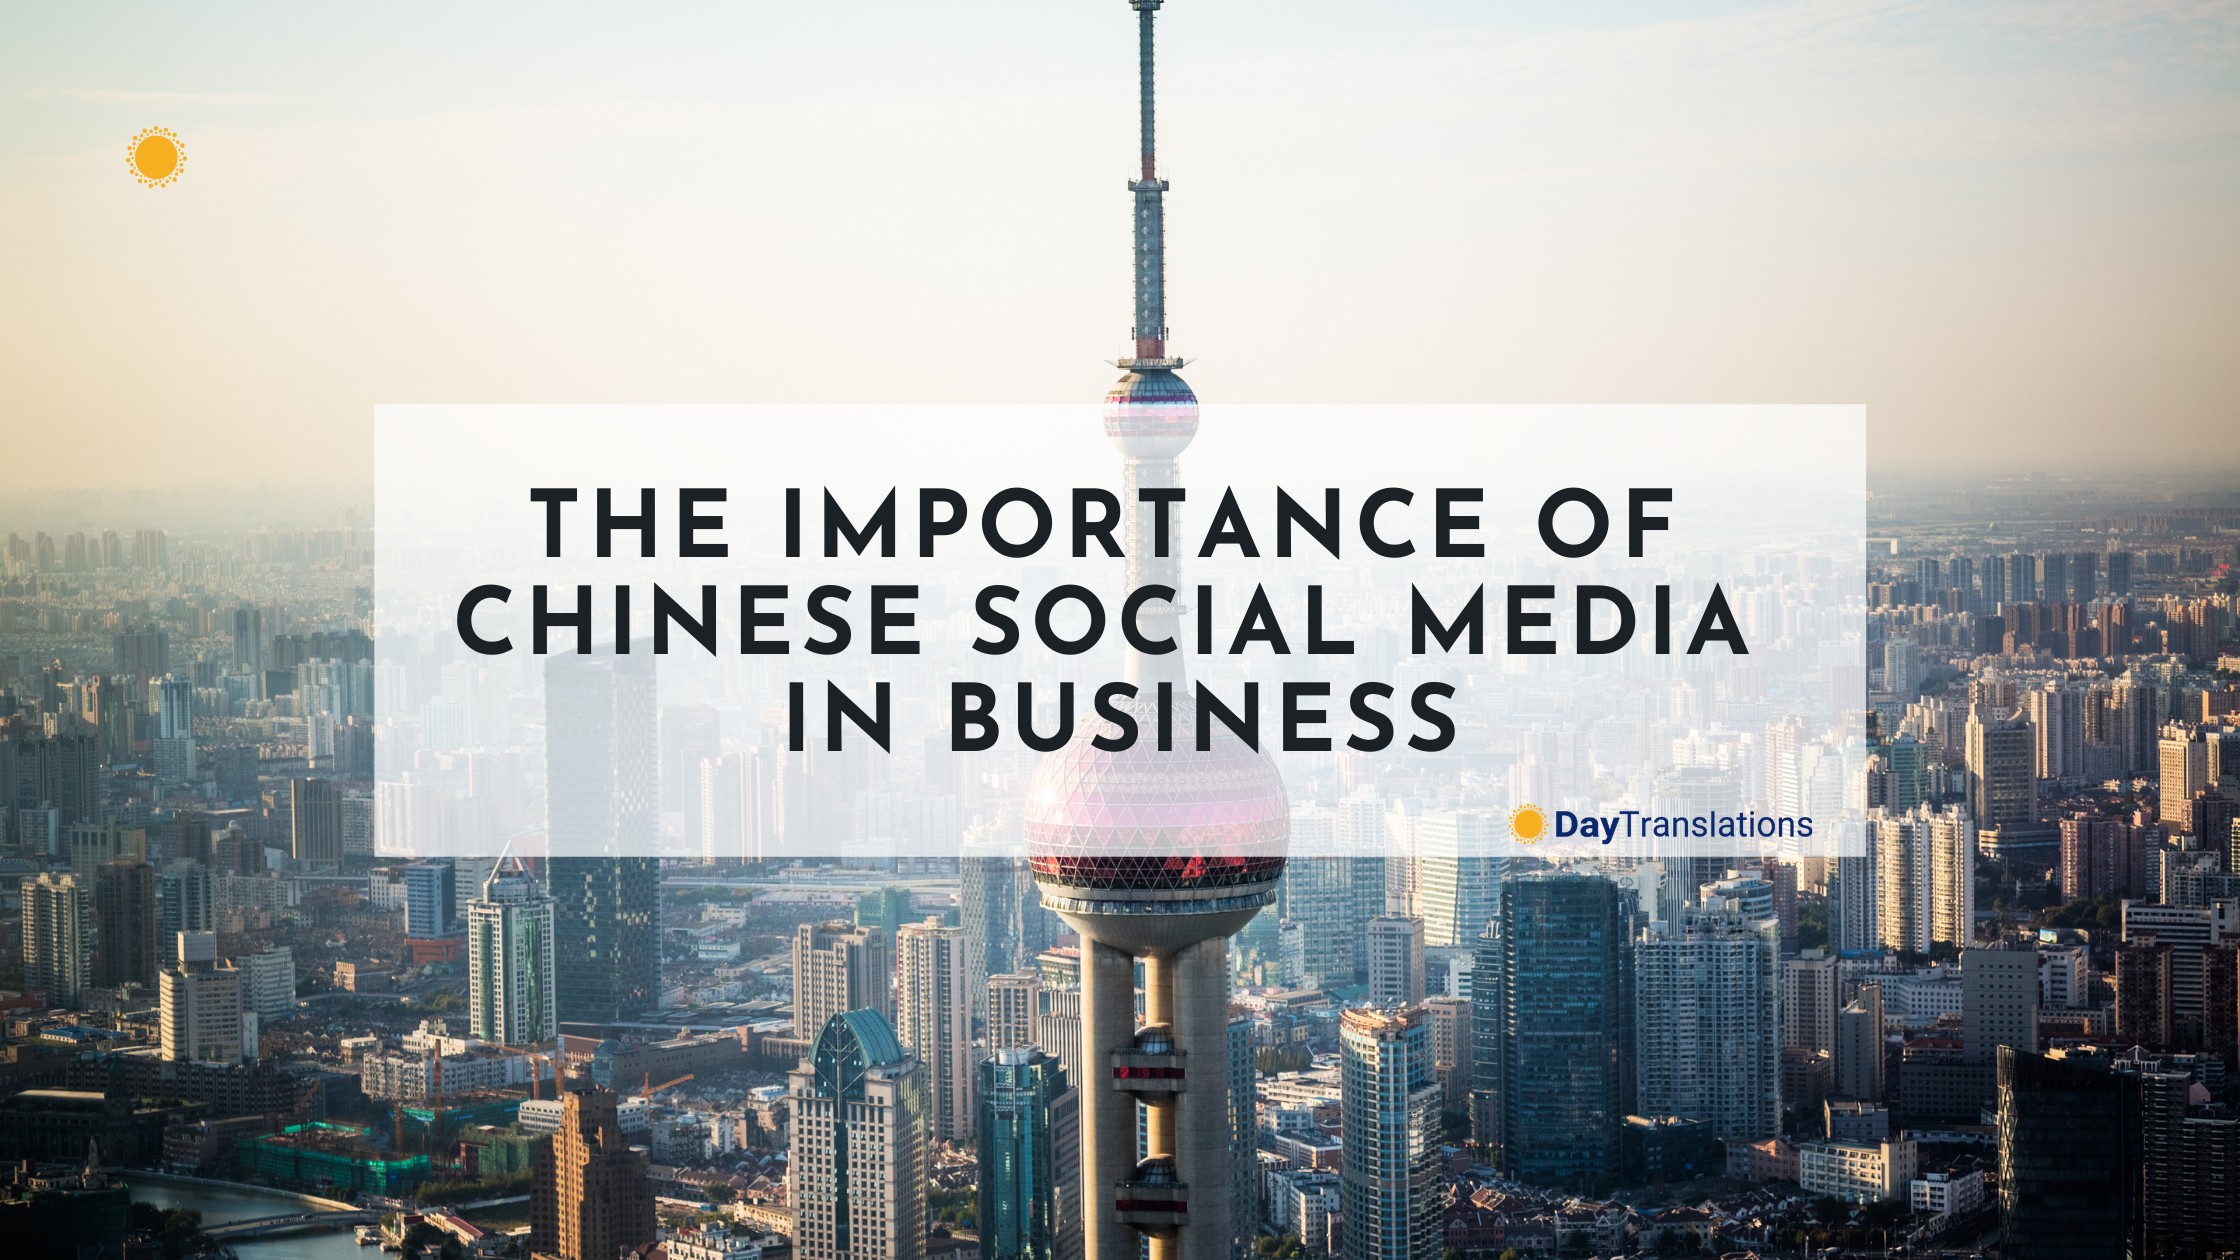 The Importance of Chinese Social Media in Business